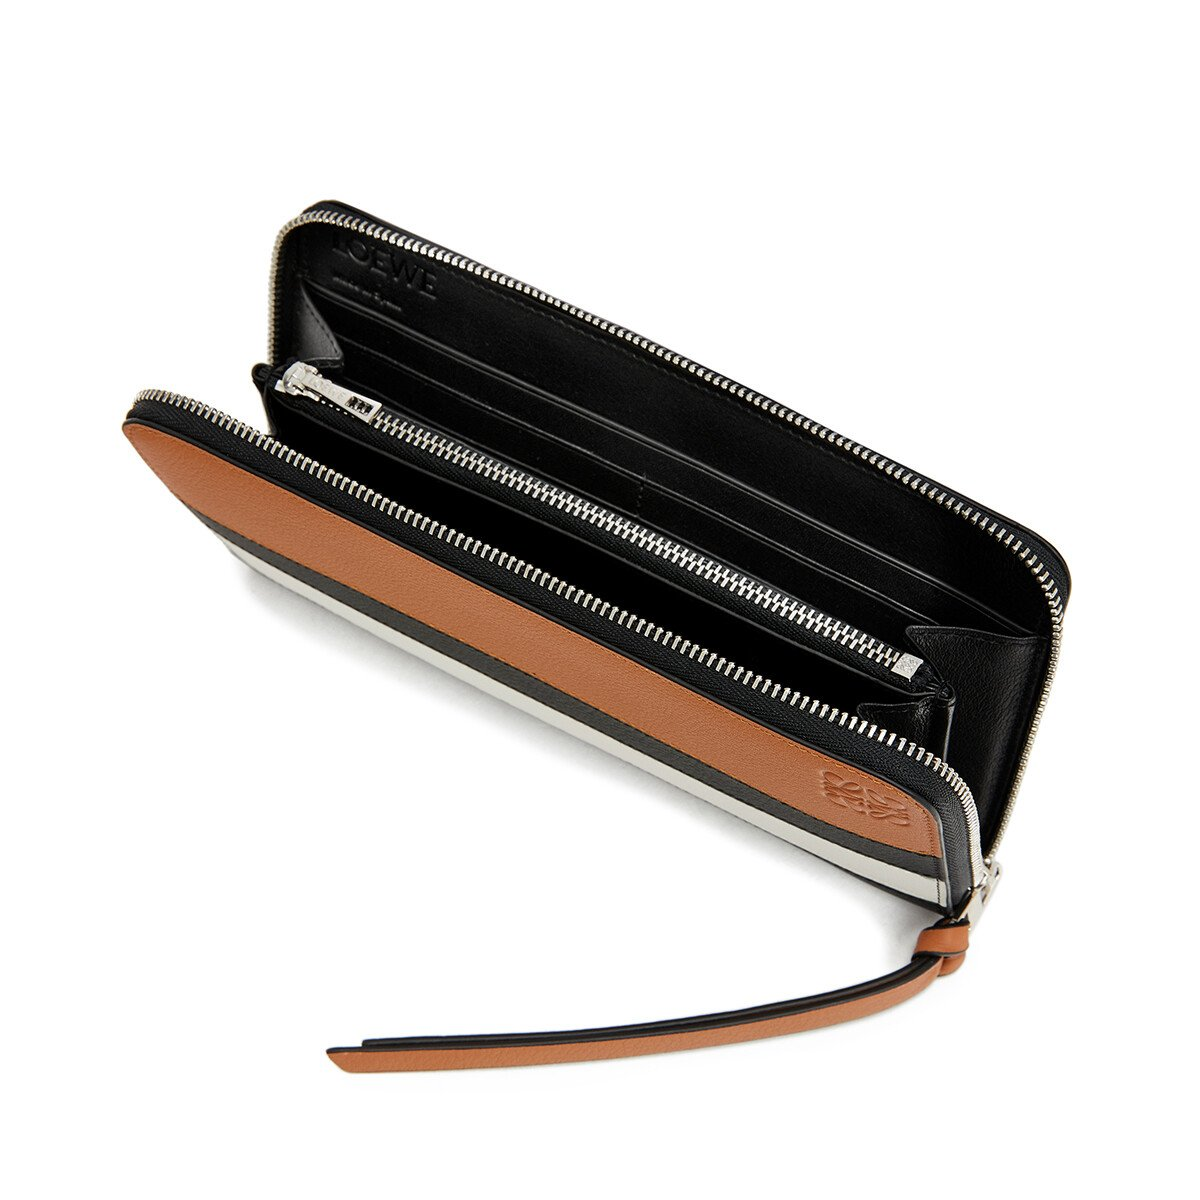 LOEWE Zip Around Wallet Marine Black/White front